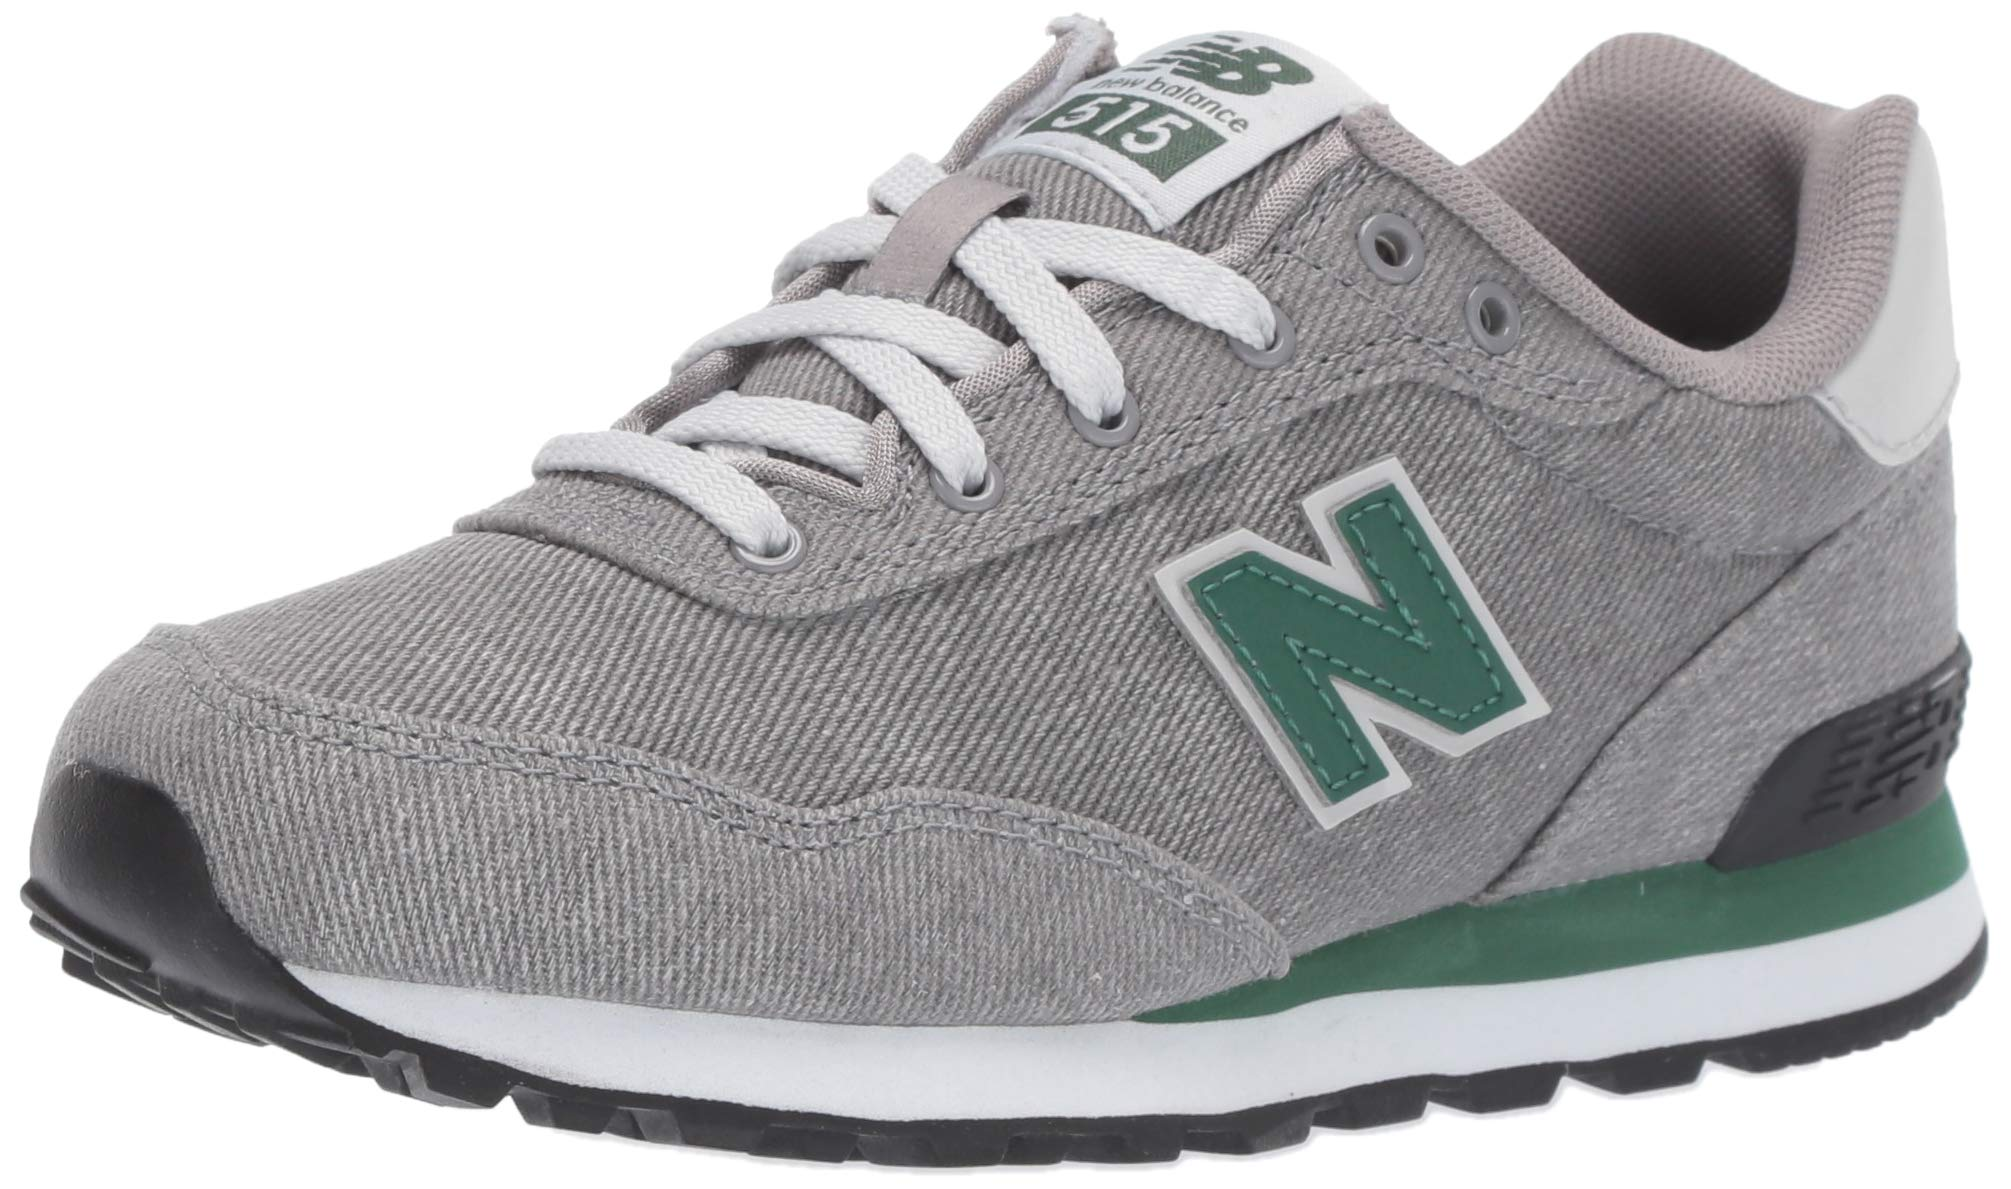 New Balance Boys' 515v1 Running Shoe, Marblehead/Team Forest Green, 5 M US Toddler